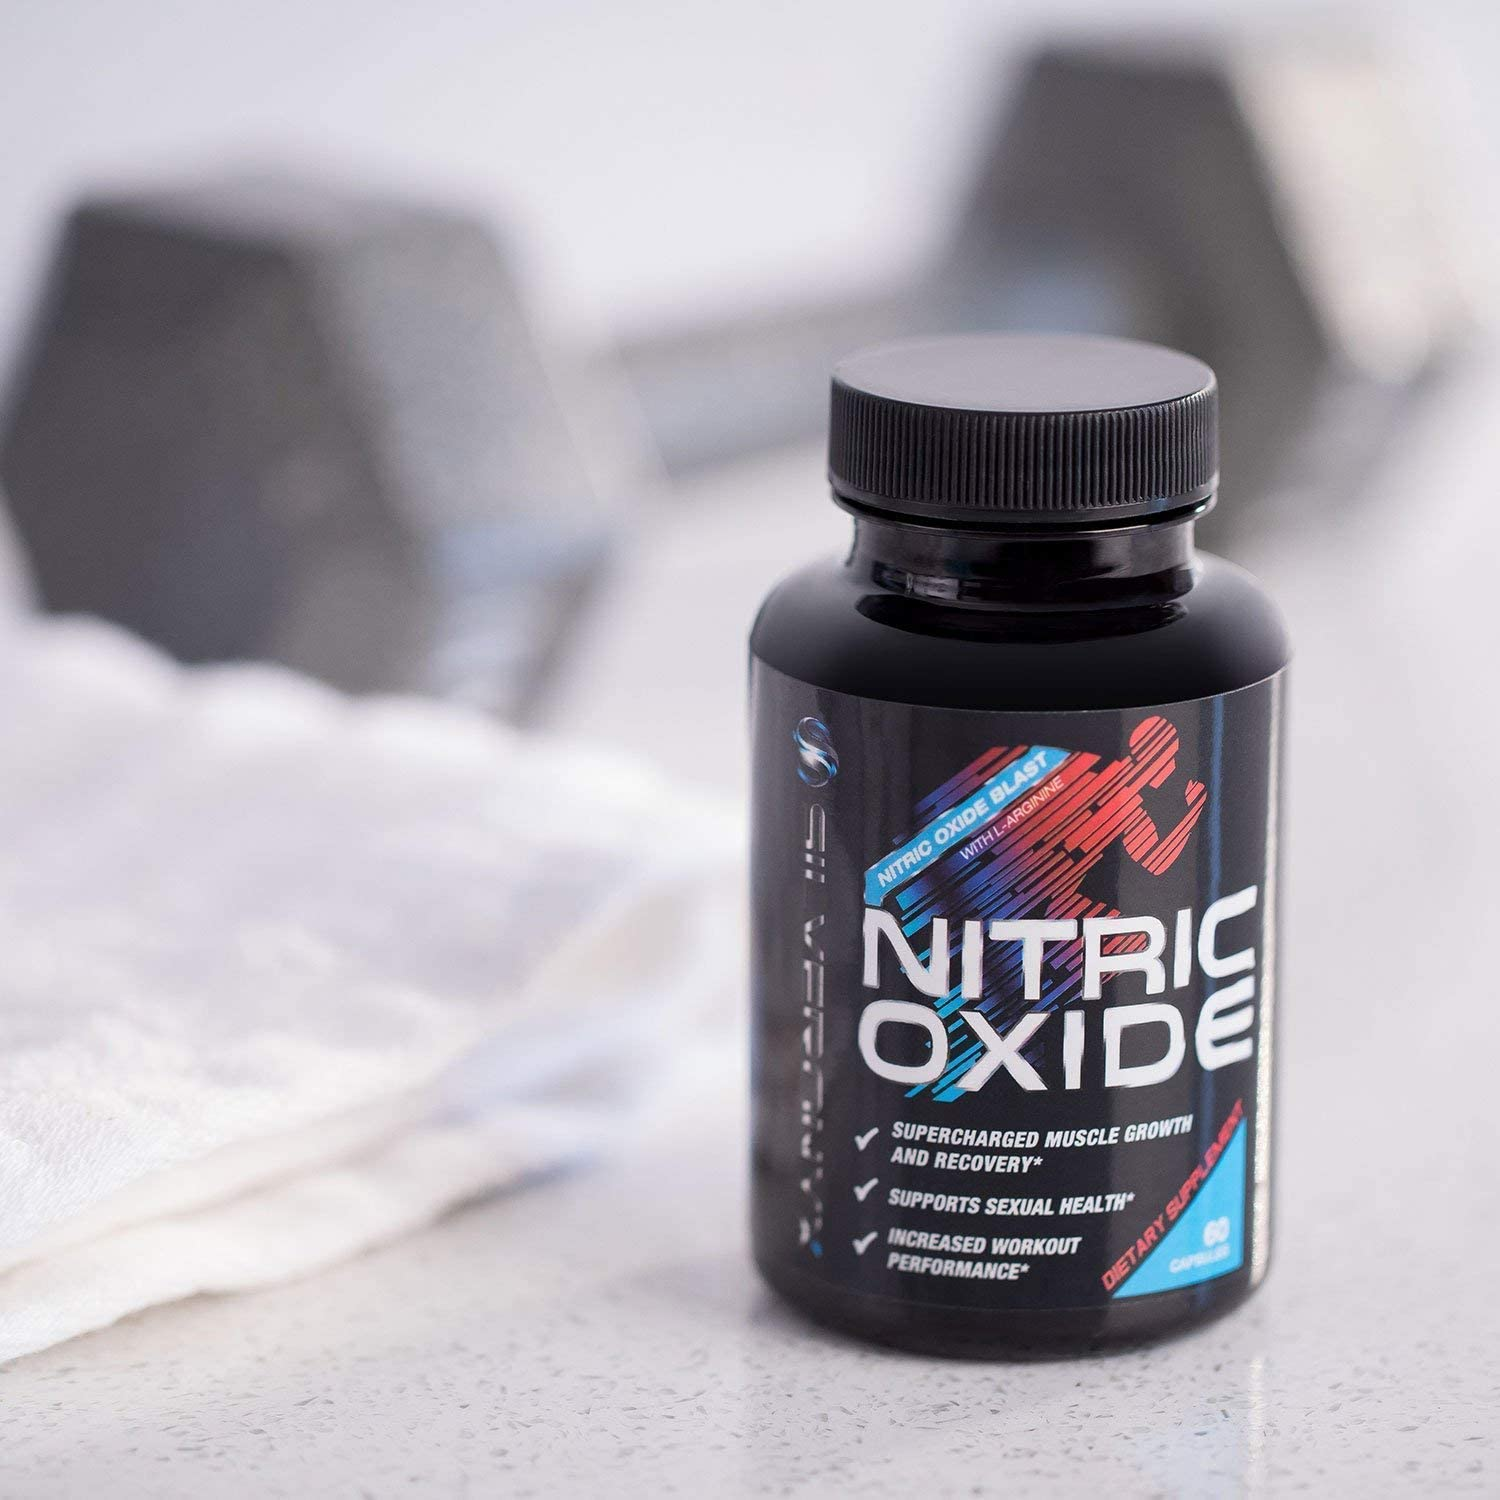 Extra Strength Nitric Oxide Supplement L Arginine 1300mg - Citrulline Malate, AAKG, Beta Alanine - Premium Muscle Building No Booster for Strength & Energy to Train Harder - 60 Capsules: Health & Personal Care